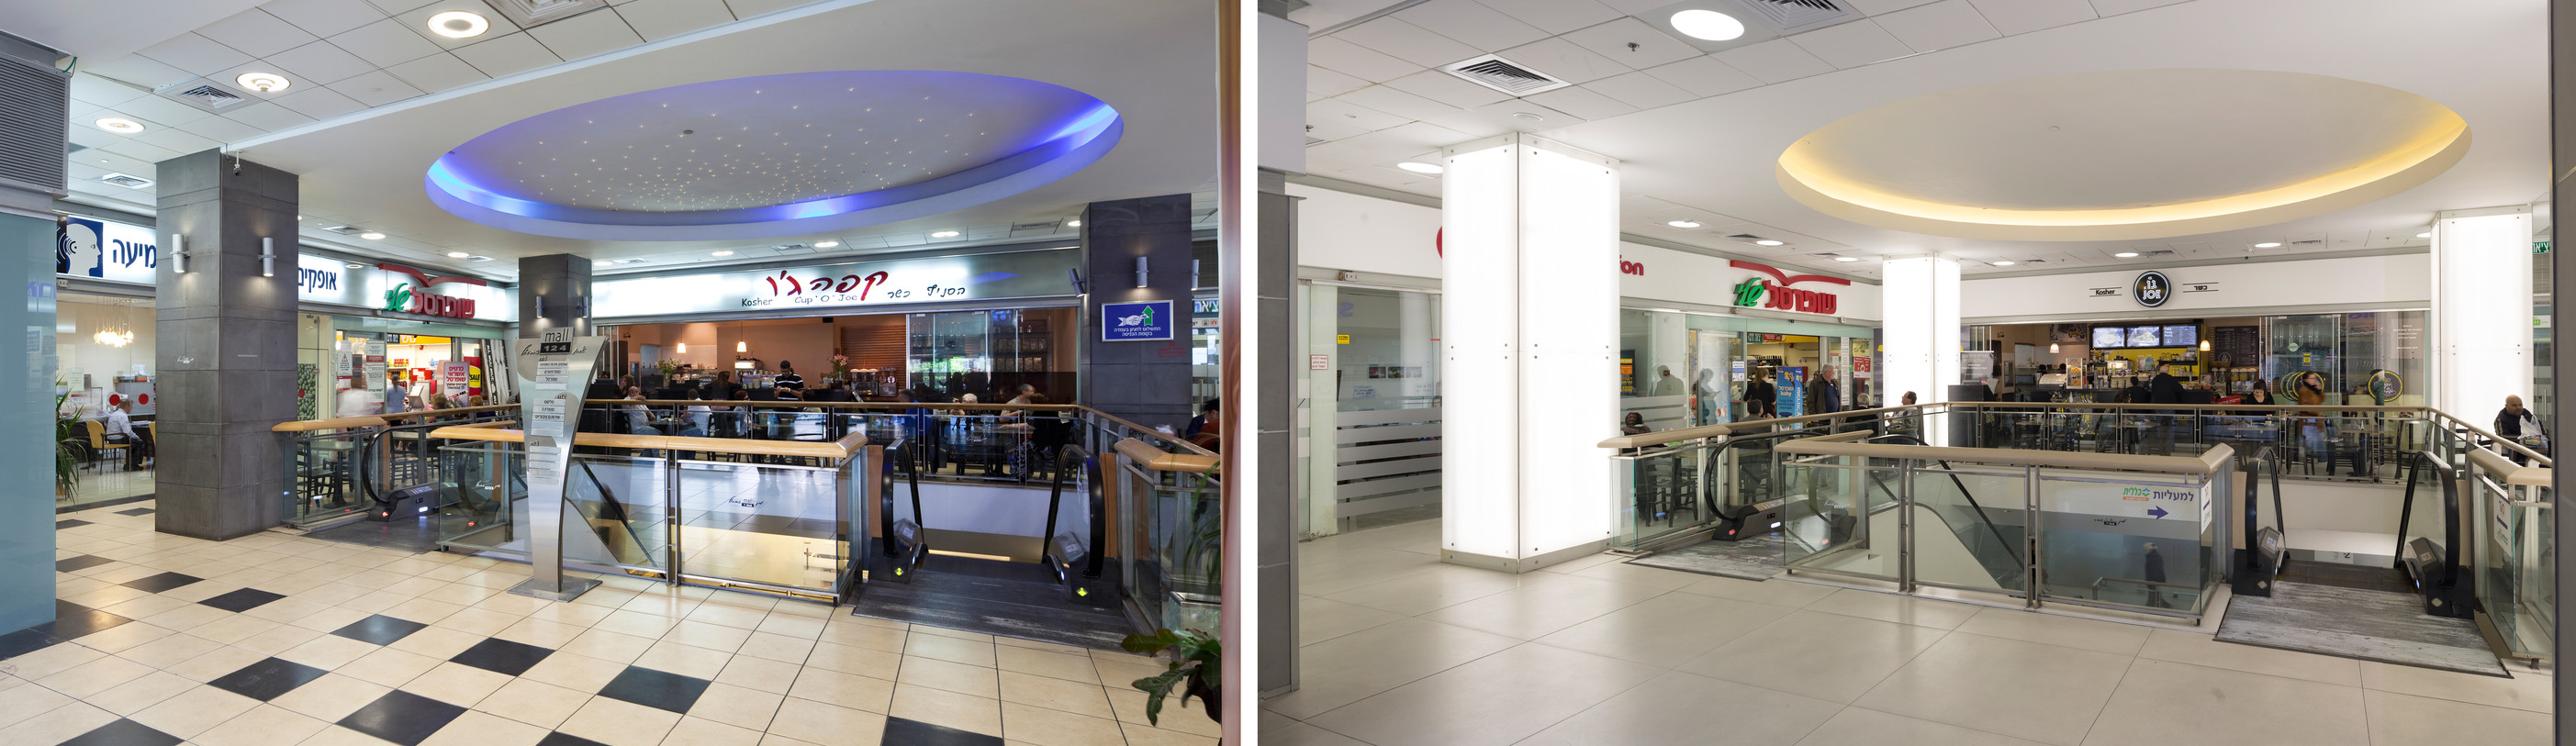 Main Lobby: Before and After Renovation